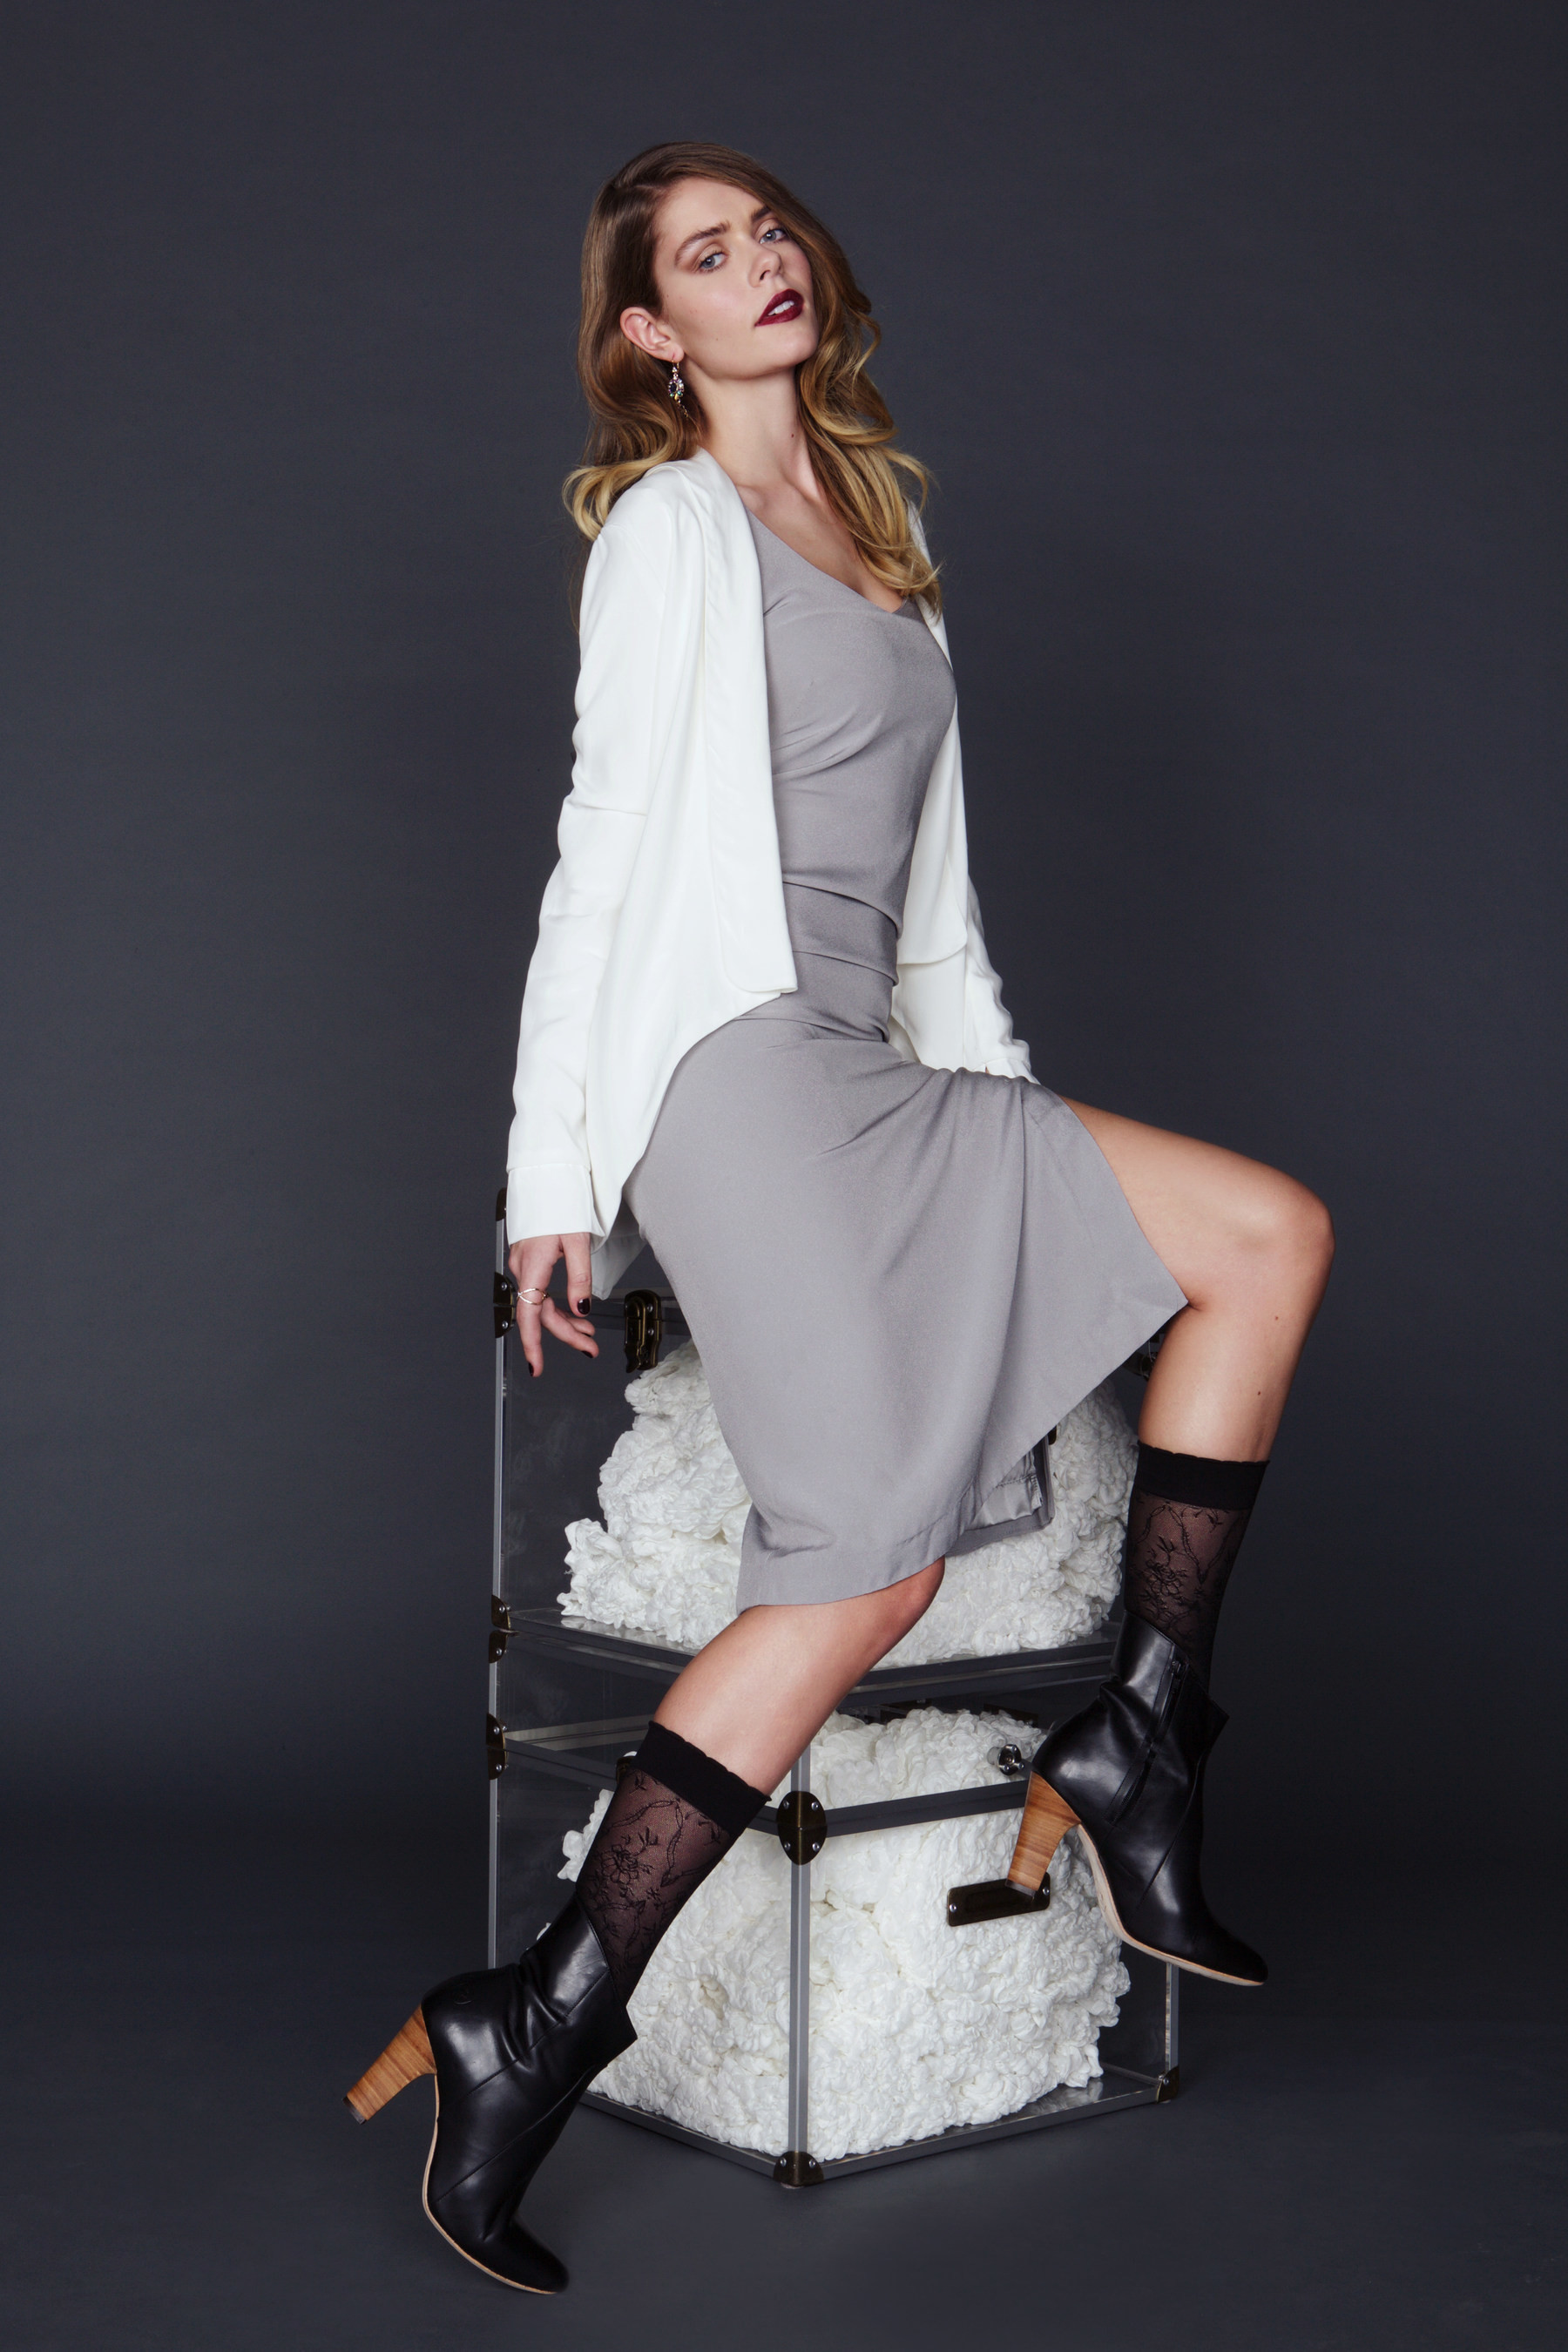 """Poppy Barley & MARGE launch campaign inviting women to """"Celebrate the Luxury of You"""" with clothing and footwear exclusively designed to fit and flatter their frames and lifestyles. poppybarley.com   margeclothing.com"""